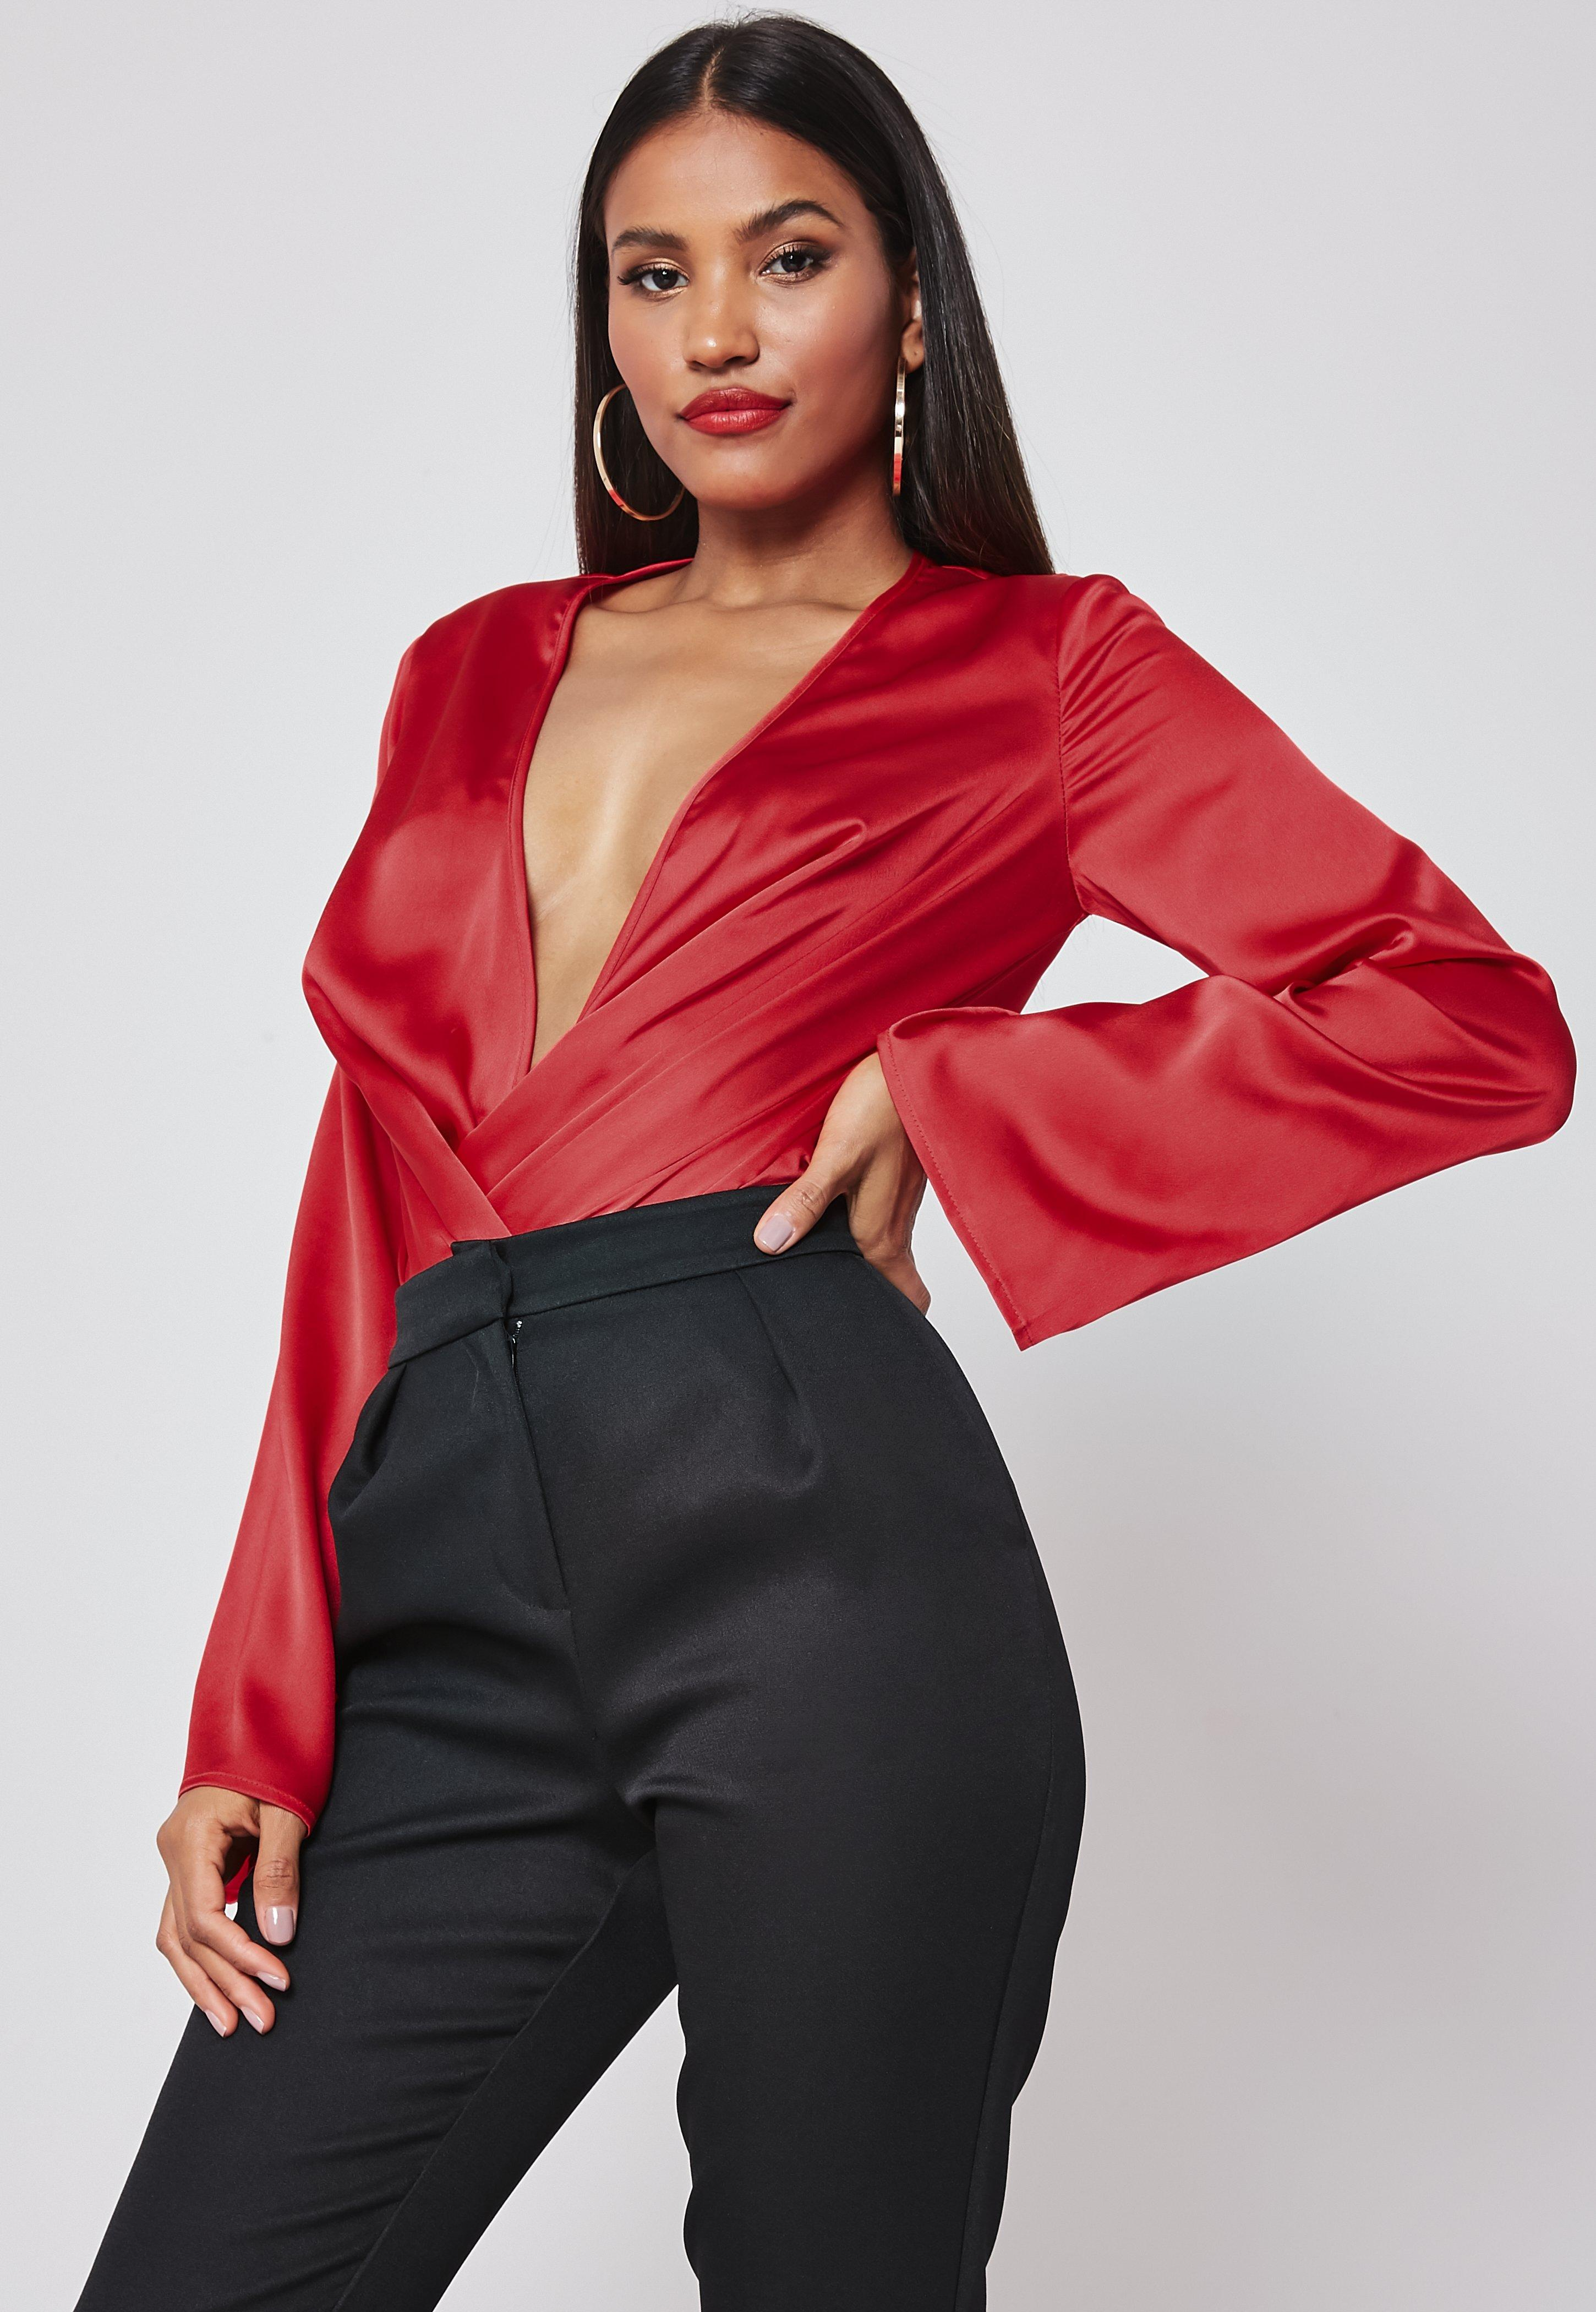 08e3b7fa11f2 Long Sleeve Bodysuits Online - Missguided